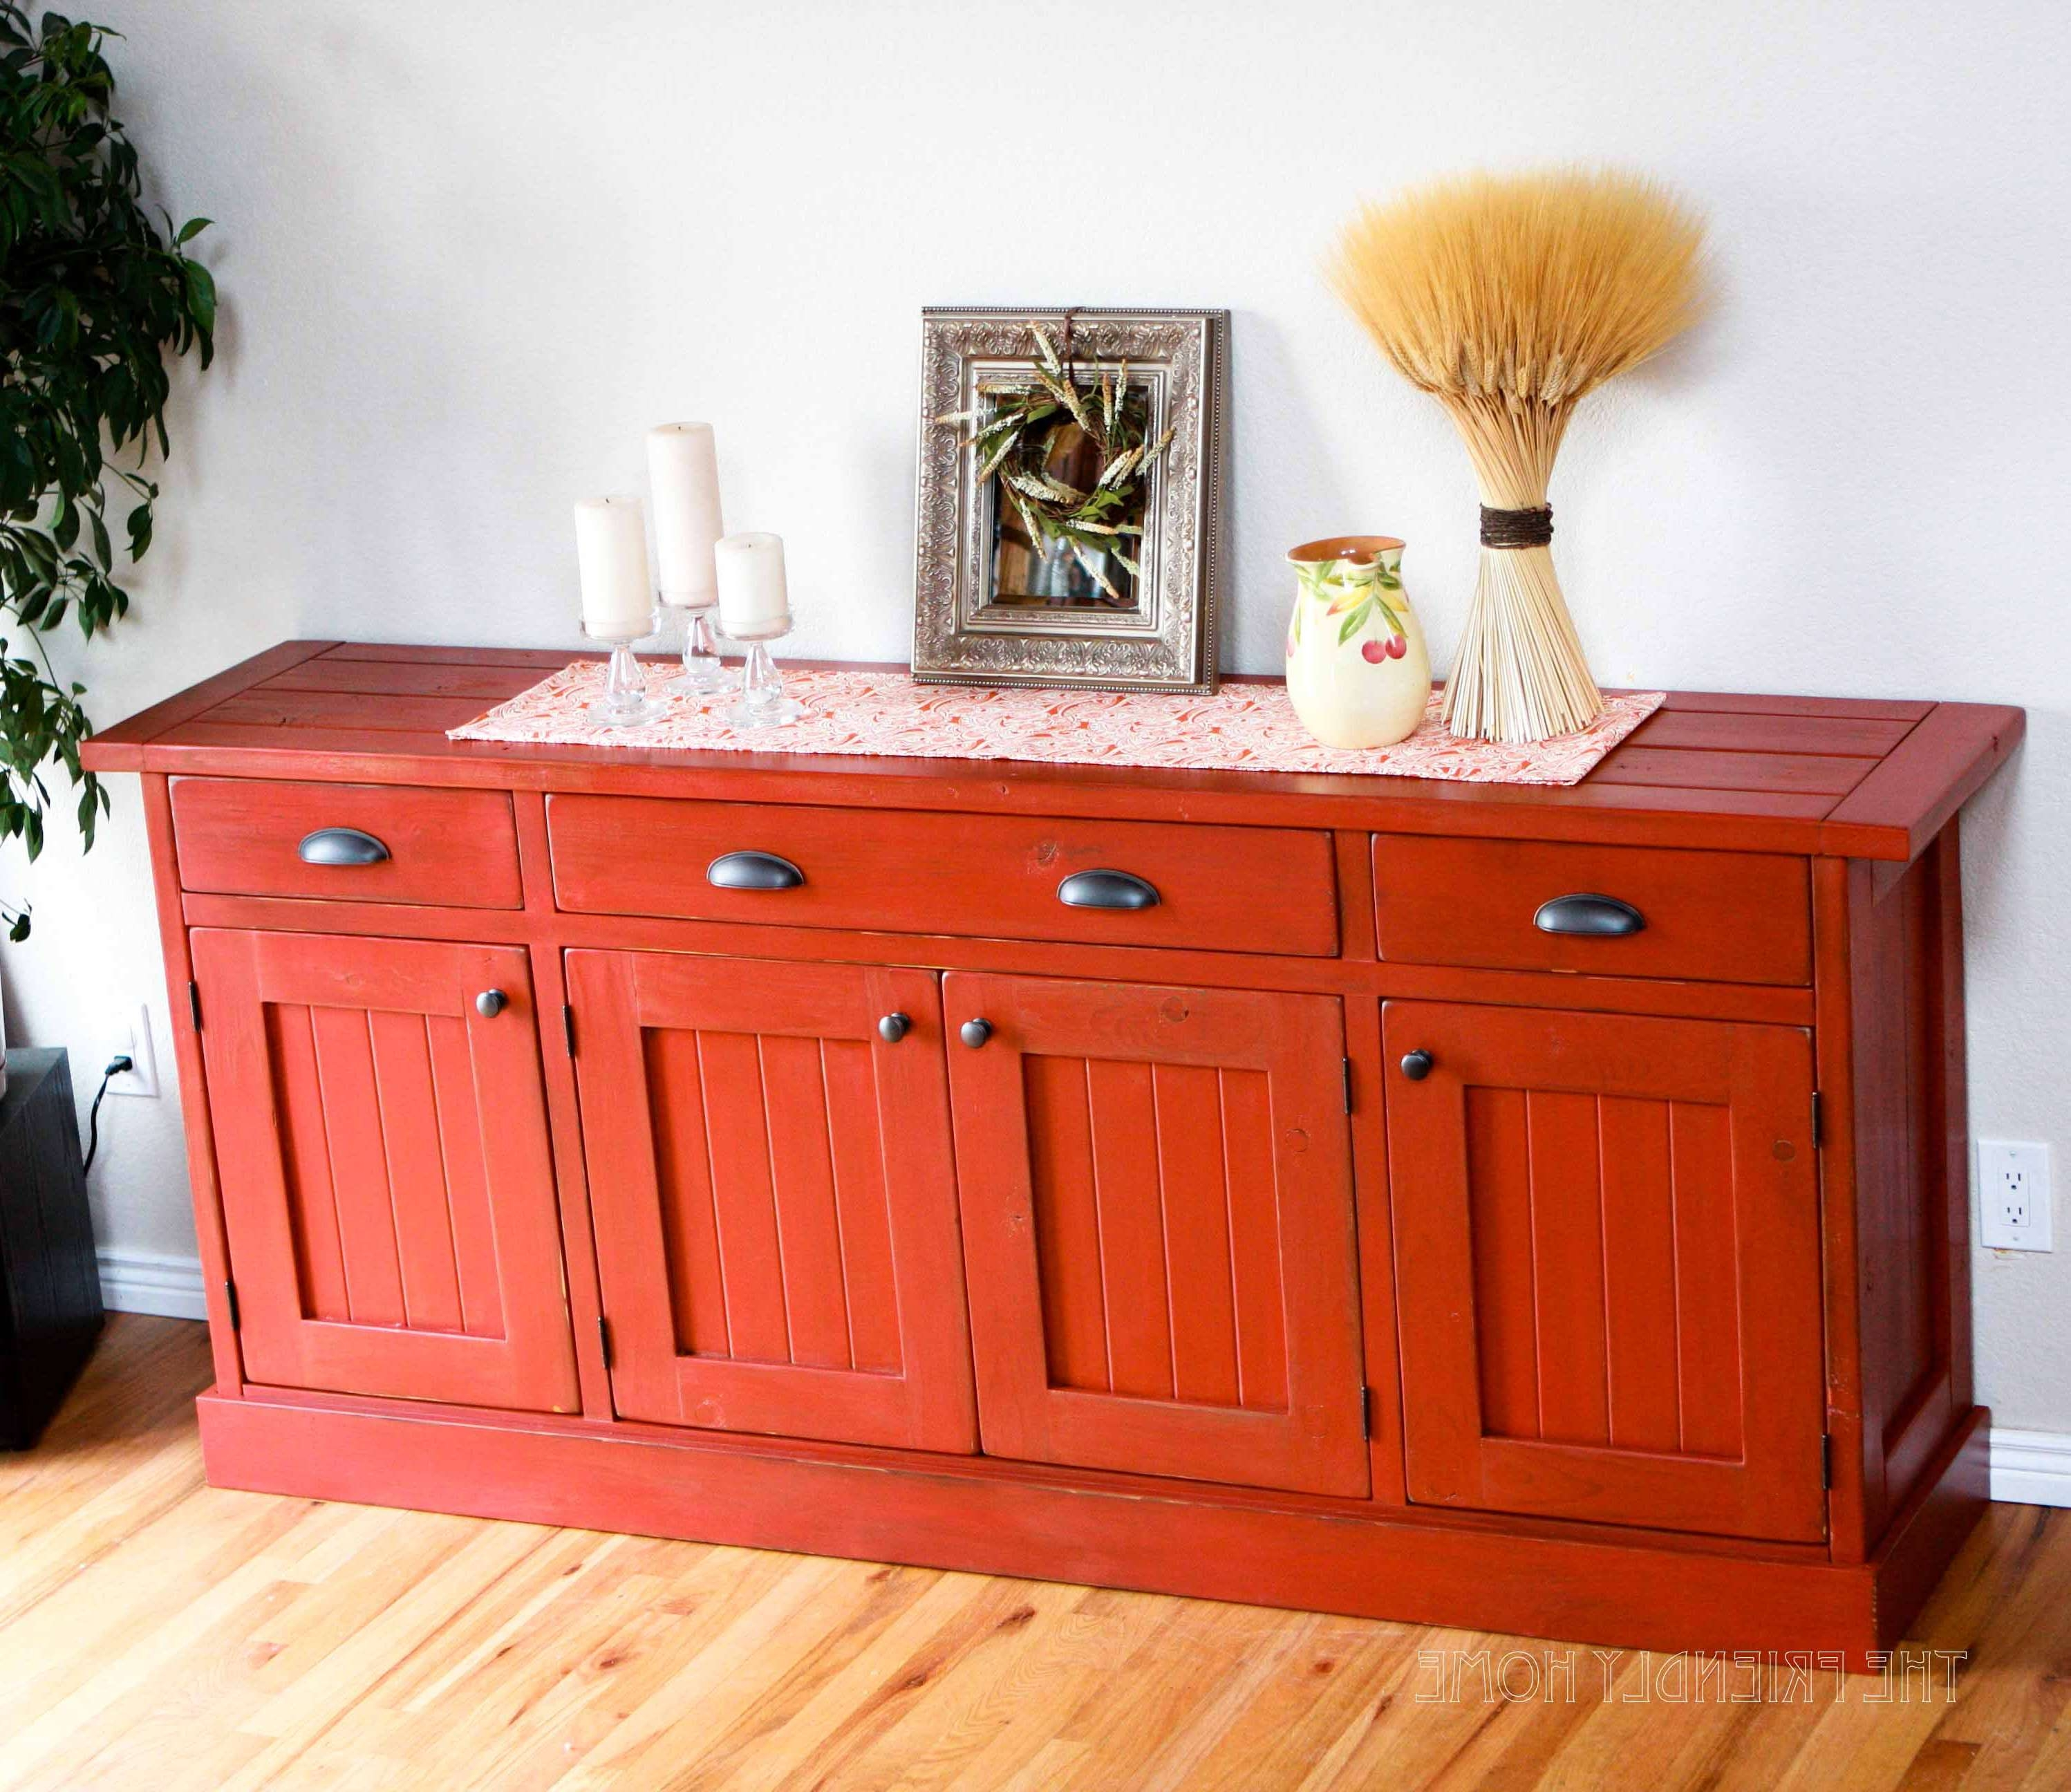 Ana White | Rustic Planked Wood Sideboard – Diy Projects For Diy Sideboards (View 3 of 20)